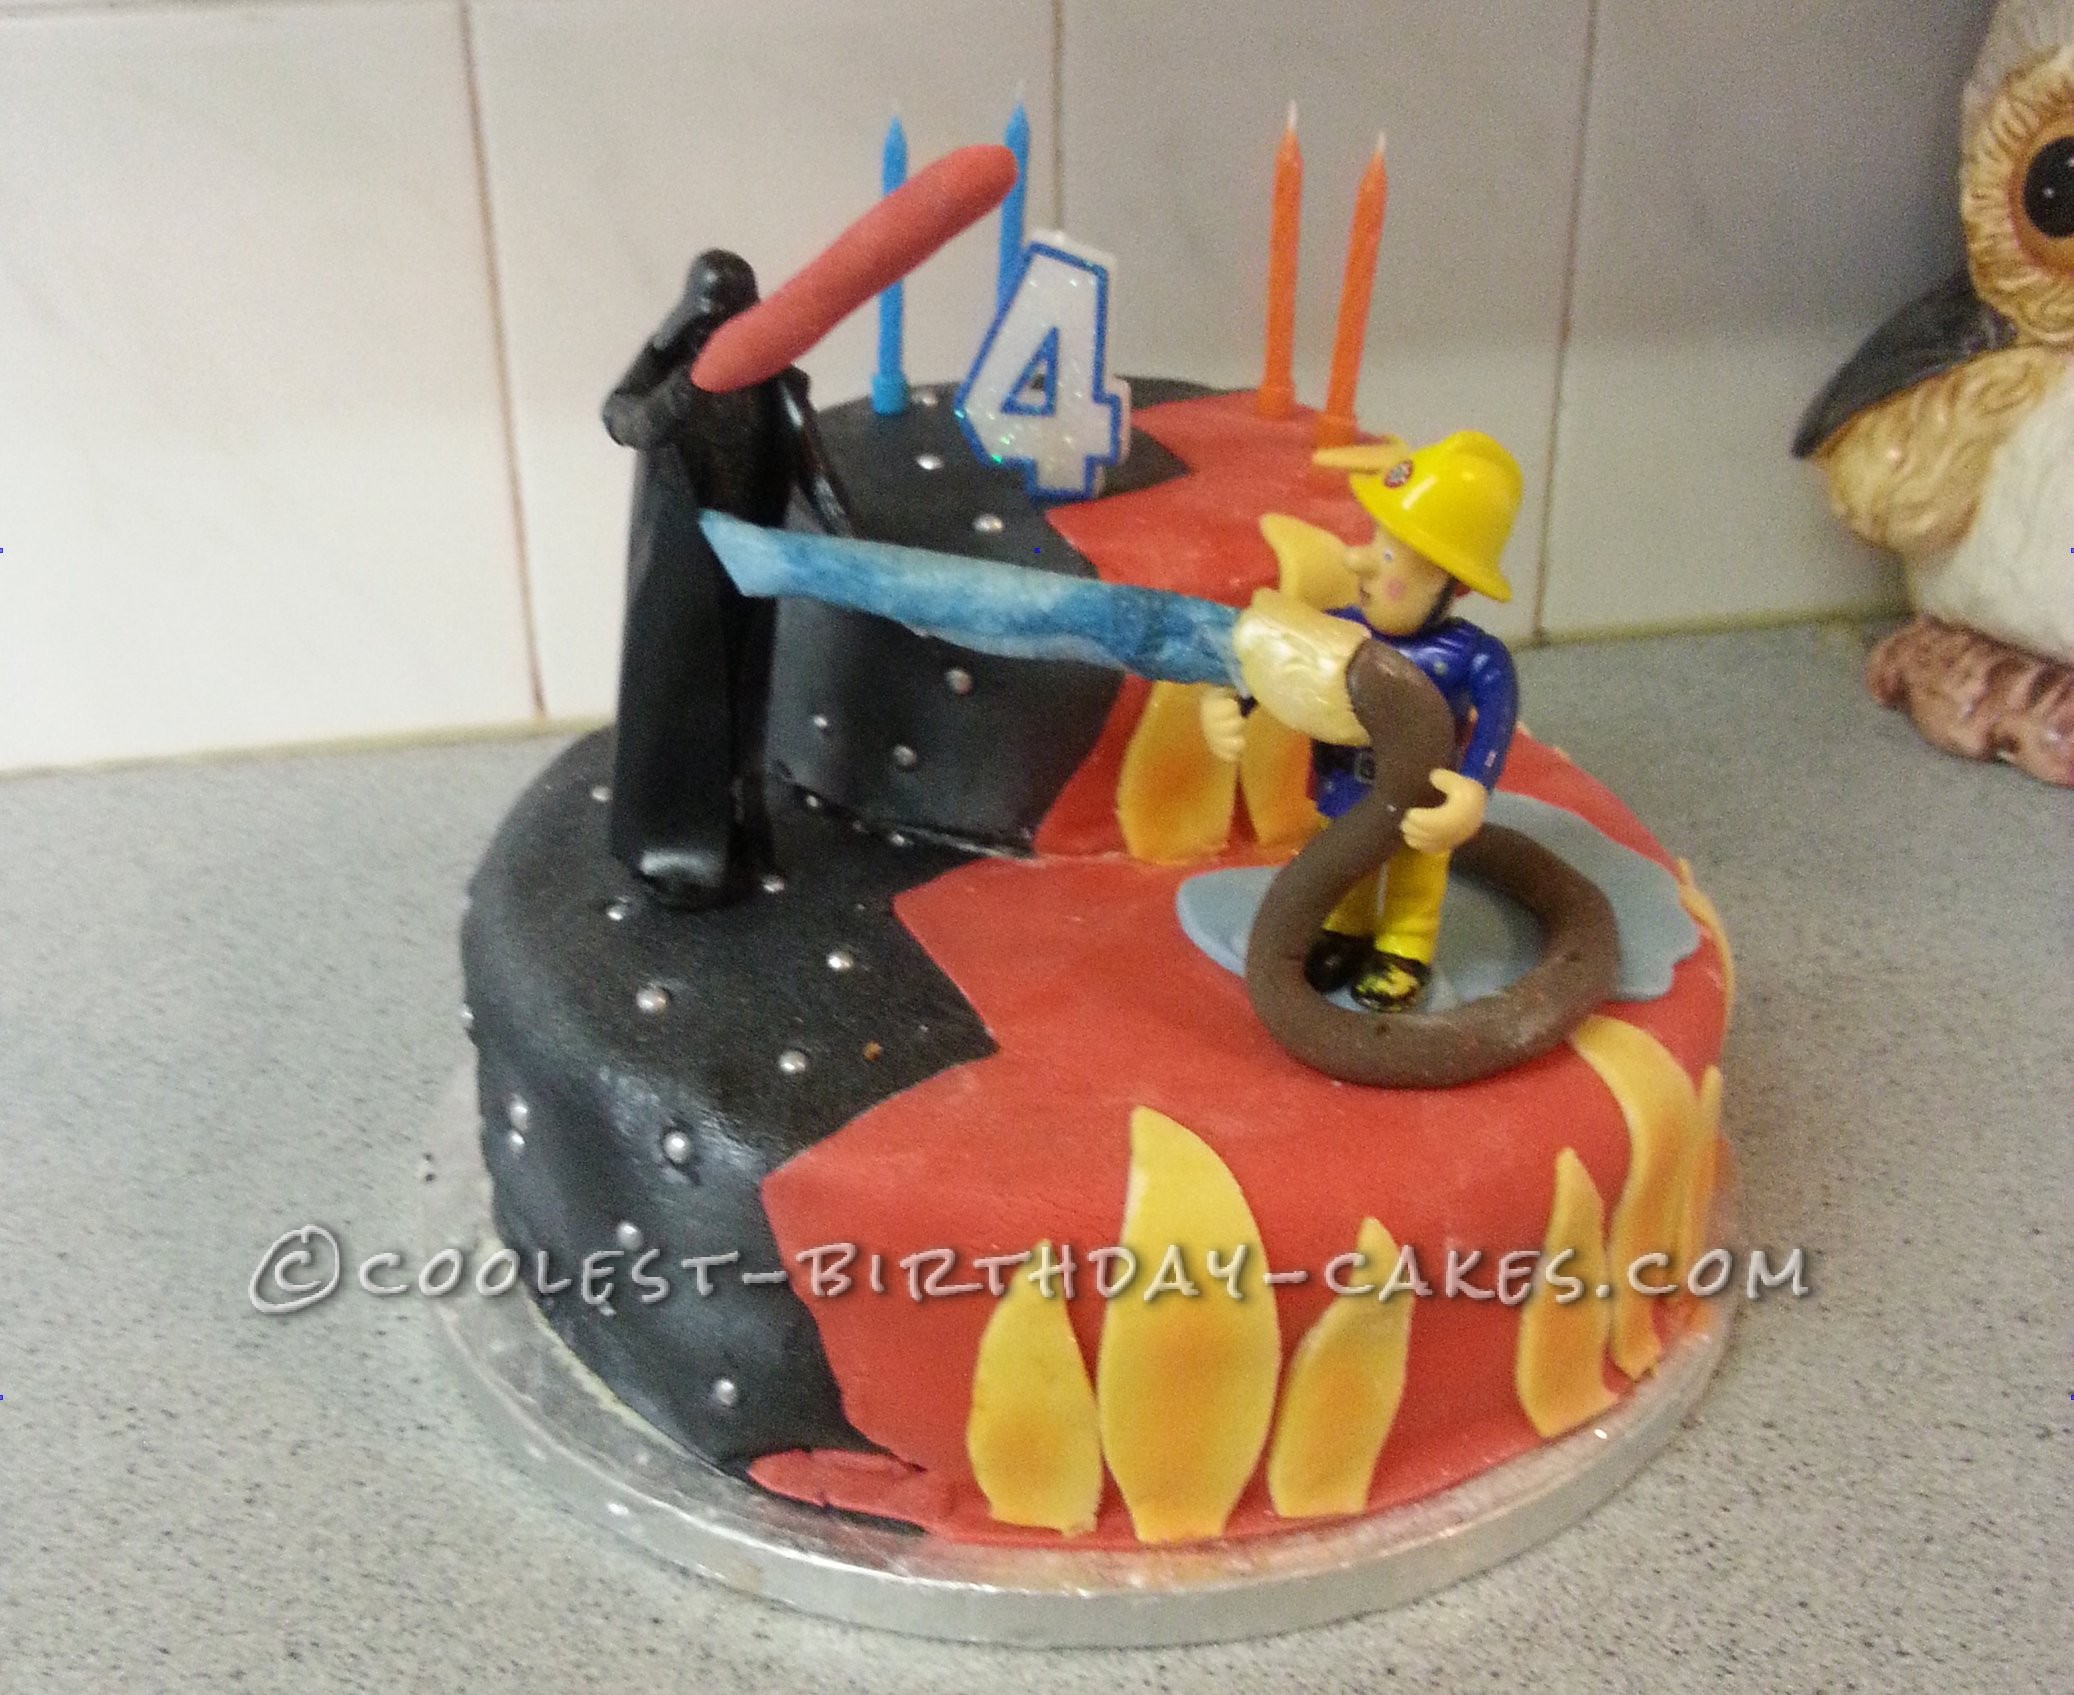 Fireman Sam Vs Darth Vader A Mixed Up Cake For An Indecisive 4